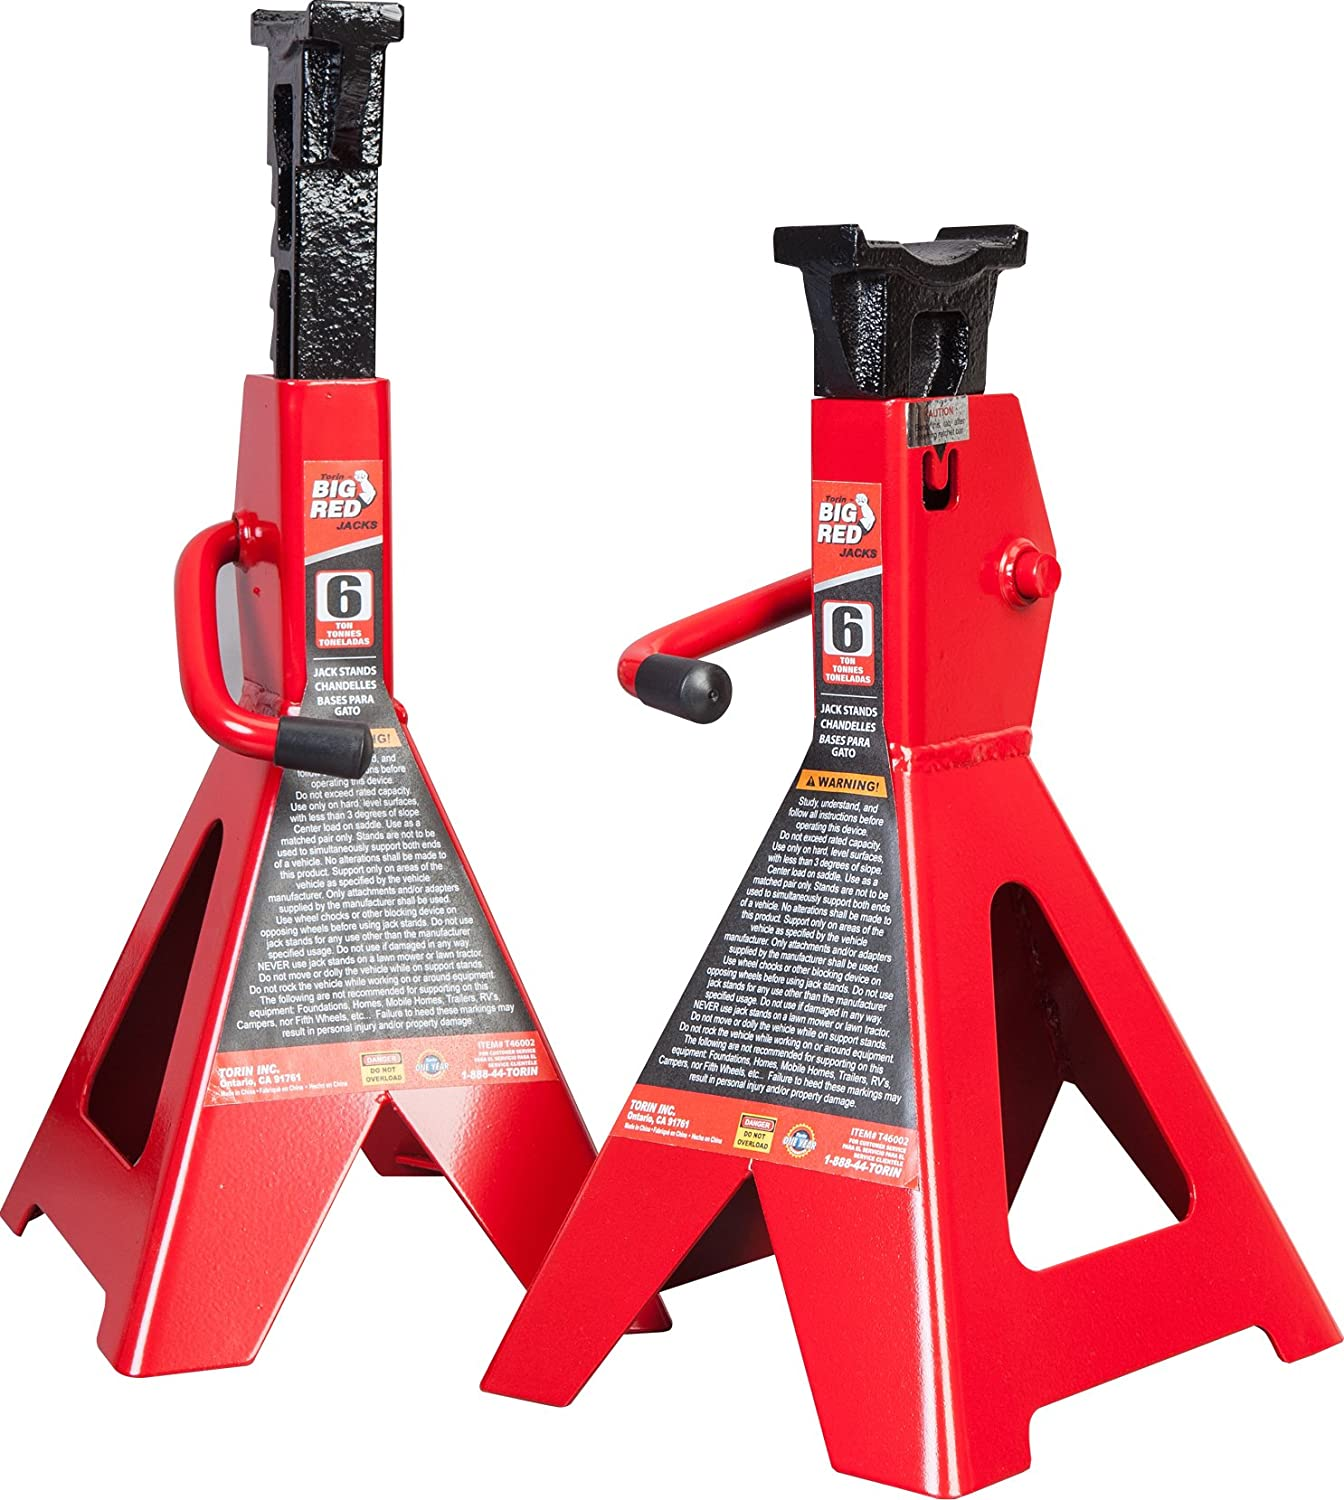 Torin Big Red Steel Jack Stands: 6 Ton Capacity, 1 Pair KEYU1 T46002